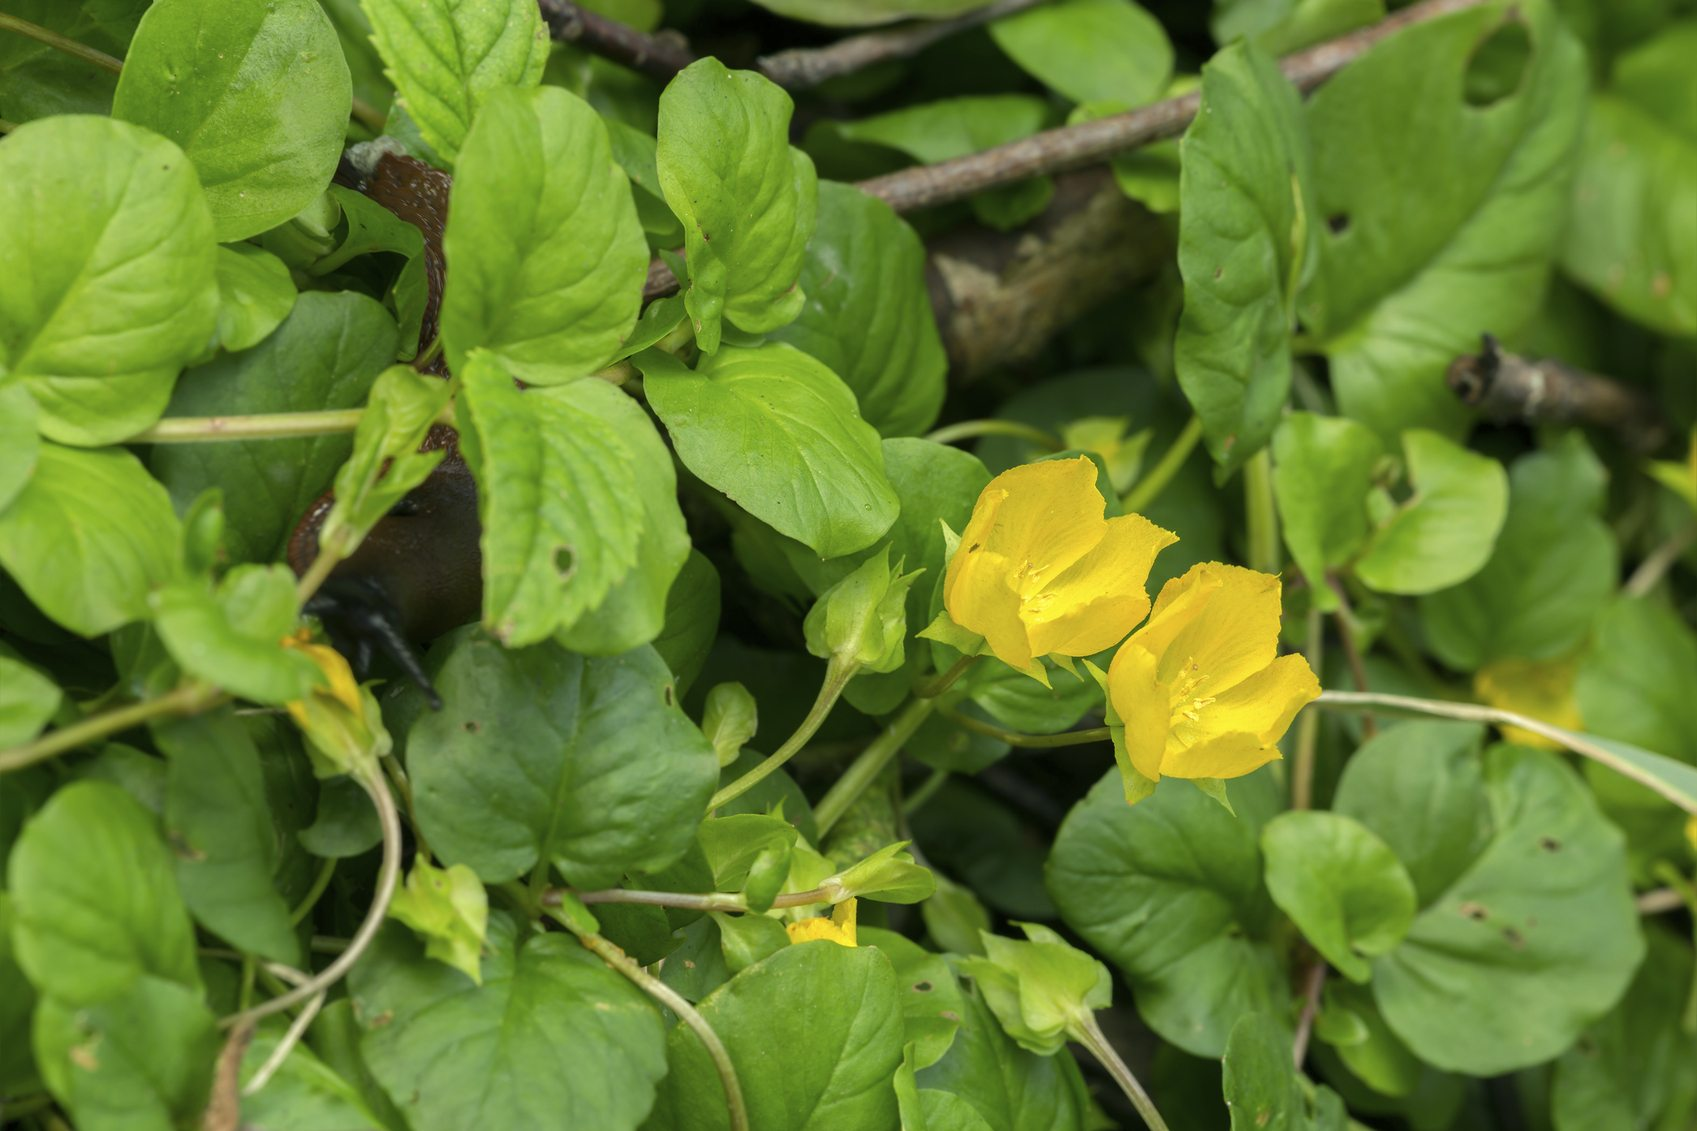 Creeping Jenny Lawn Controlling Cre...